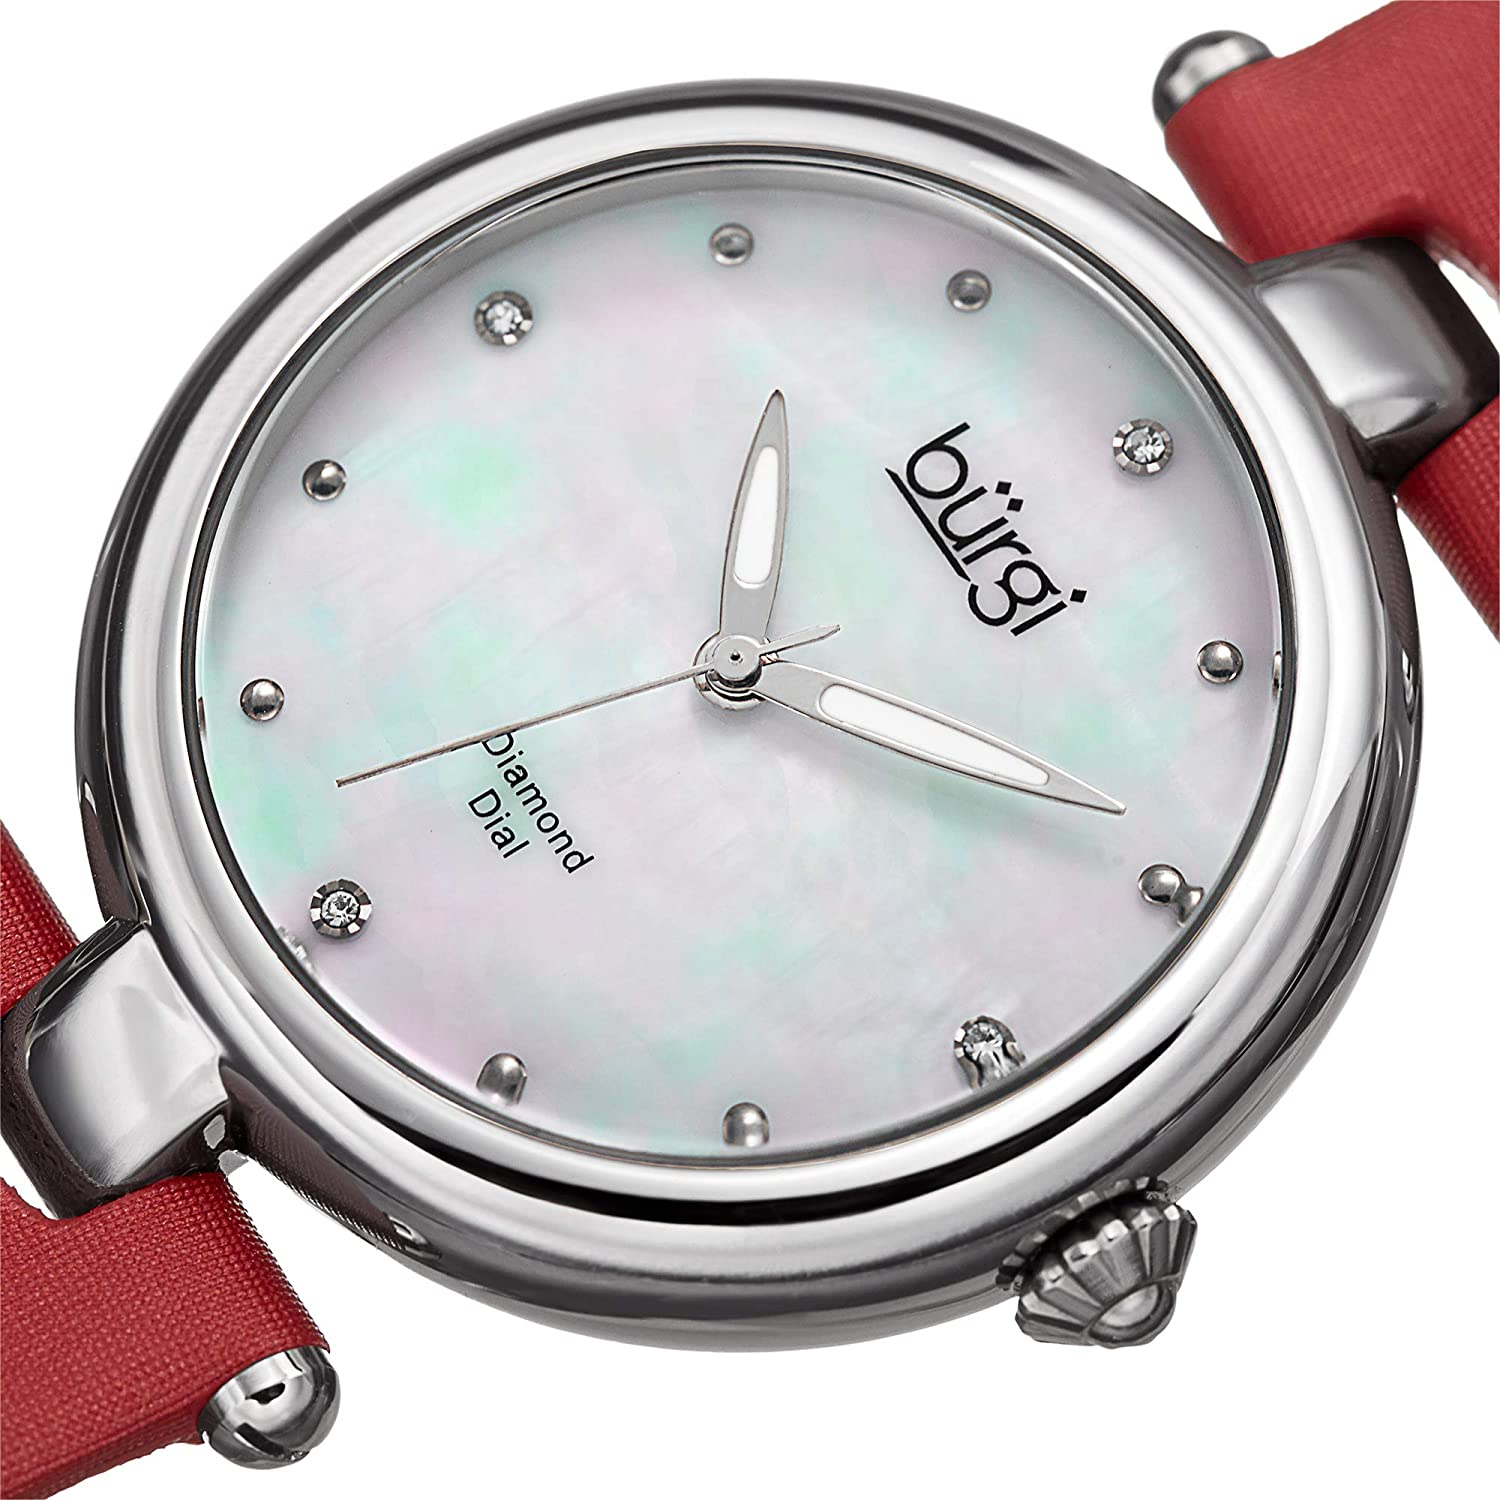 Burgi Designer BUR169 Women's Watch with Diamond Accented Markers on Mother of Pearl Dial – Skinny Genuine Leather Bracelet Strap - Red Band on Silver Case